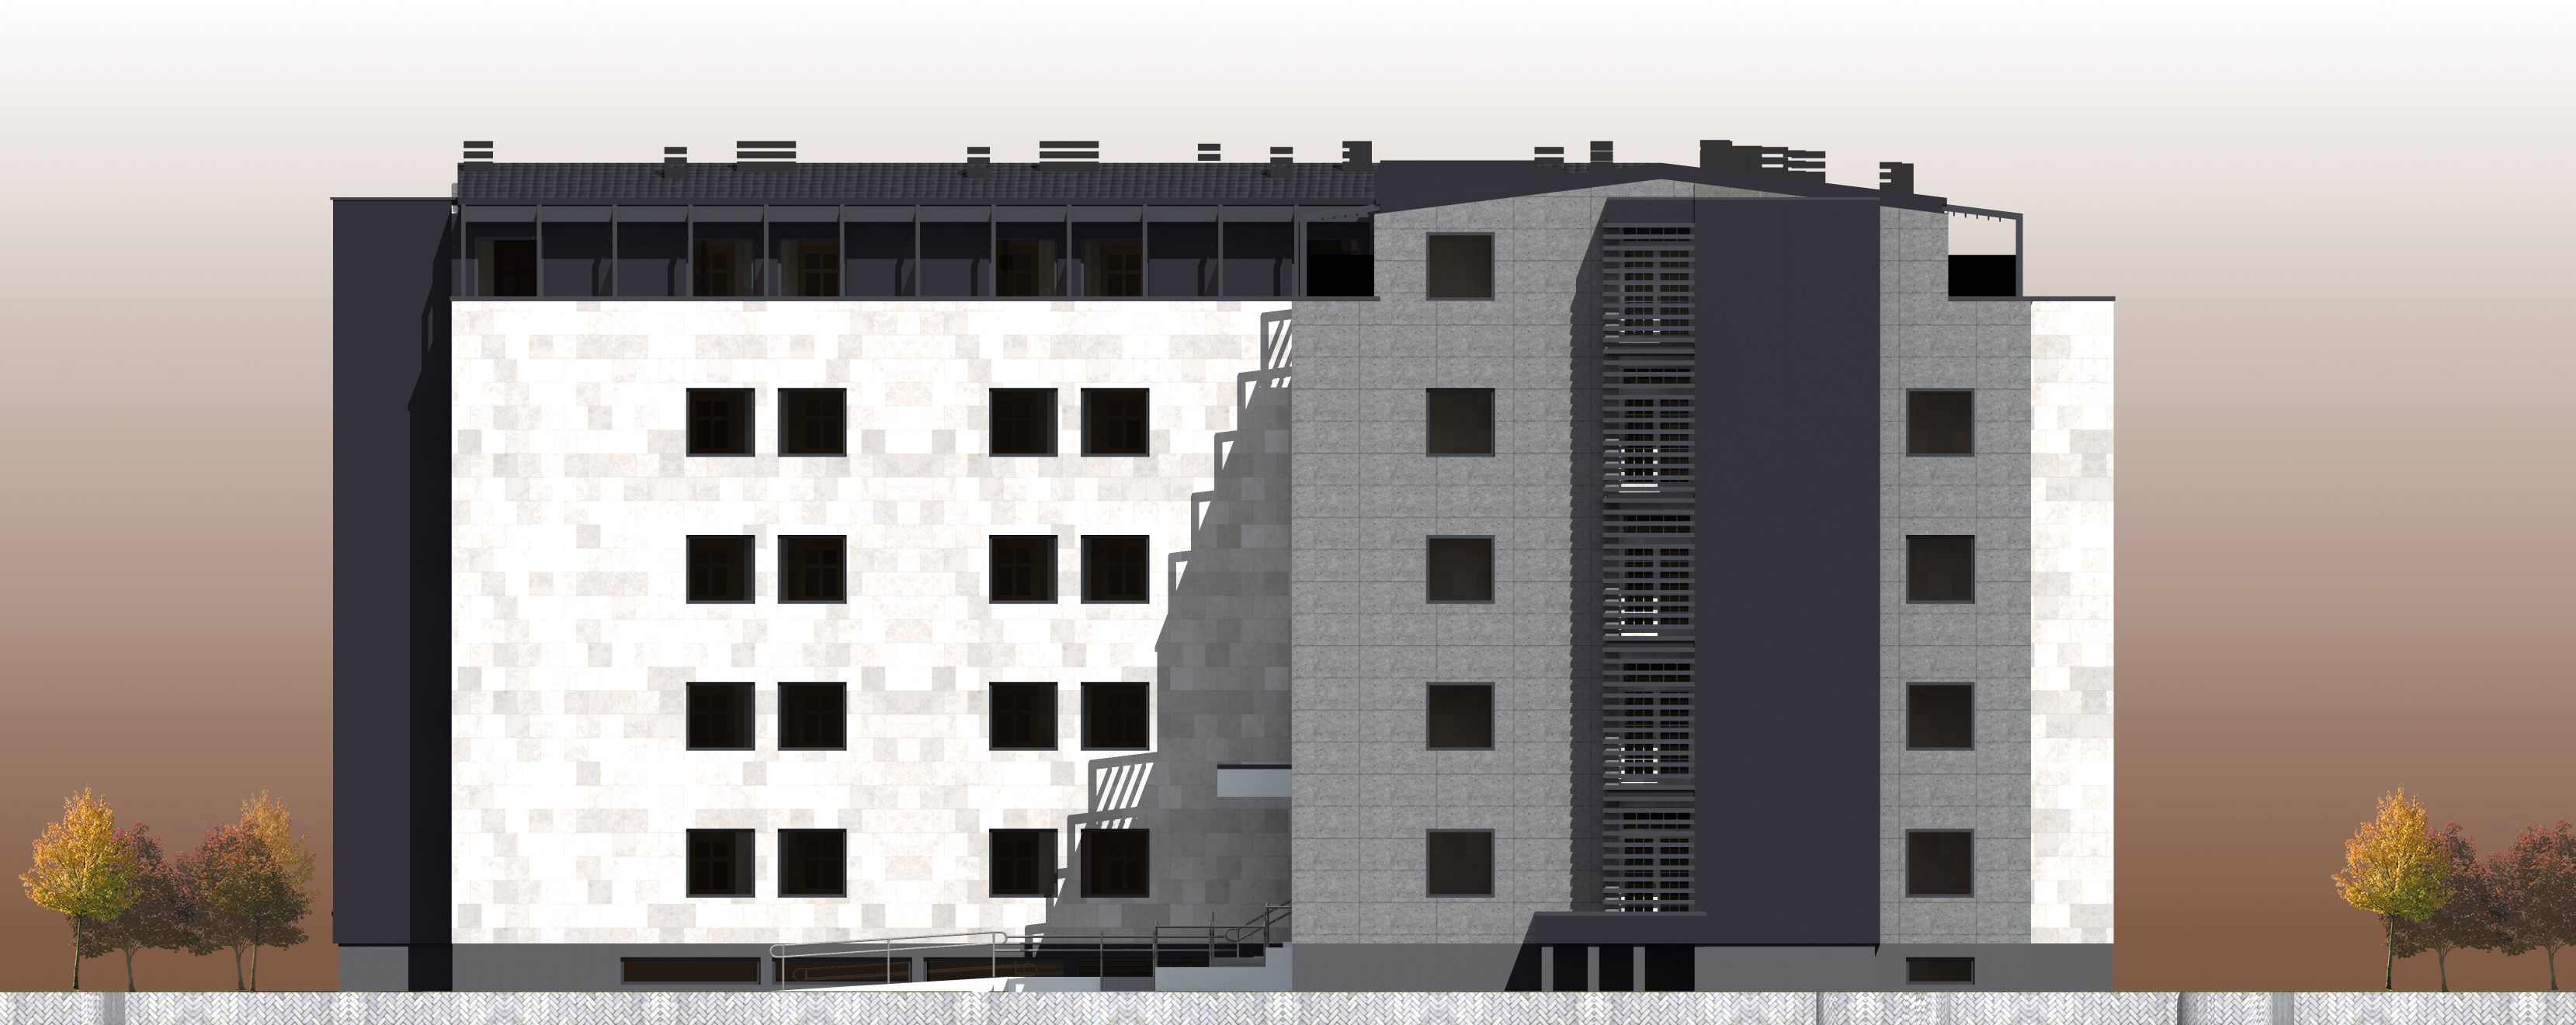 Mitrovica Faculties Construction Phase IV - Dormitory